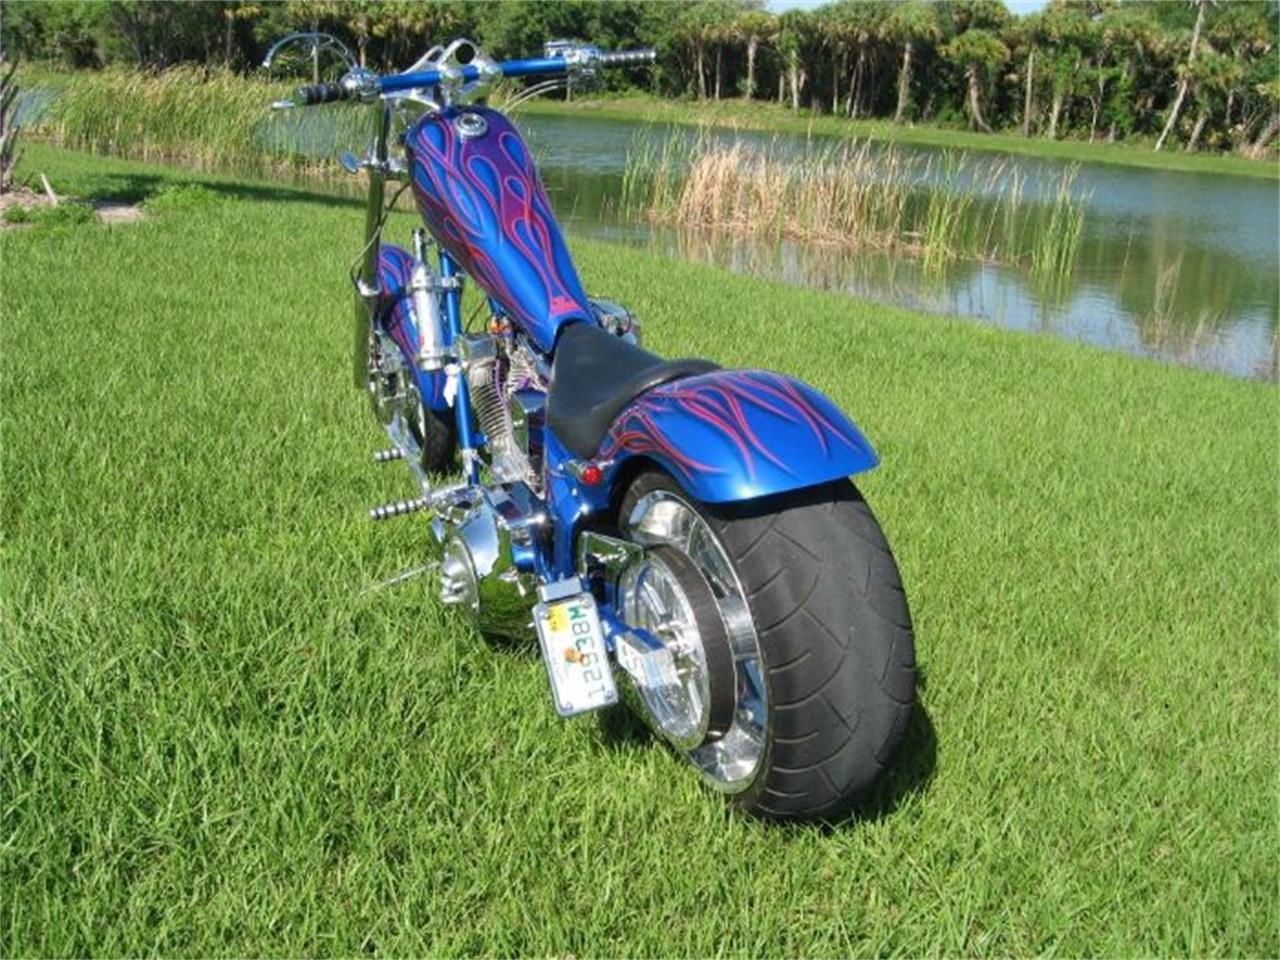 2002 American Ironhorse Texas Chopper for sale in Cadillac, MI – photo 8